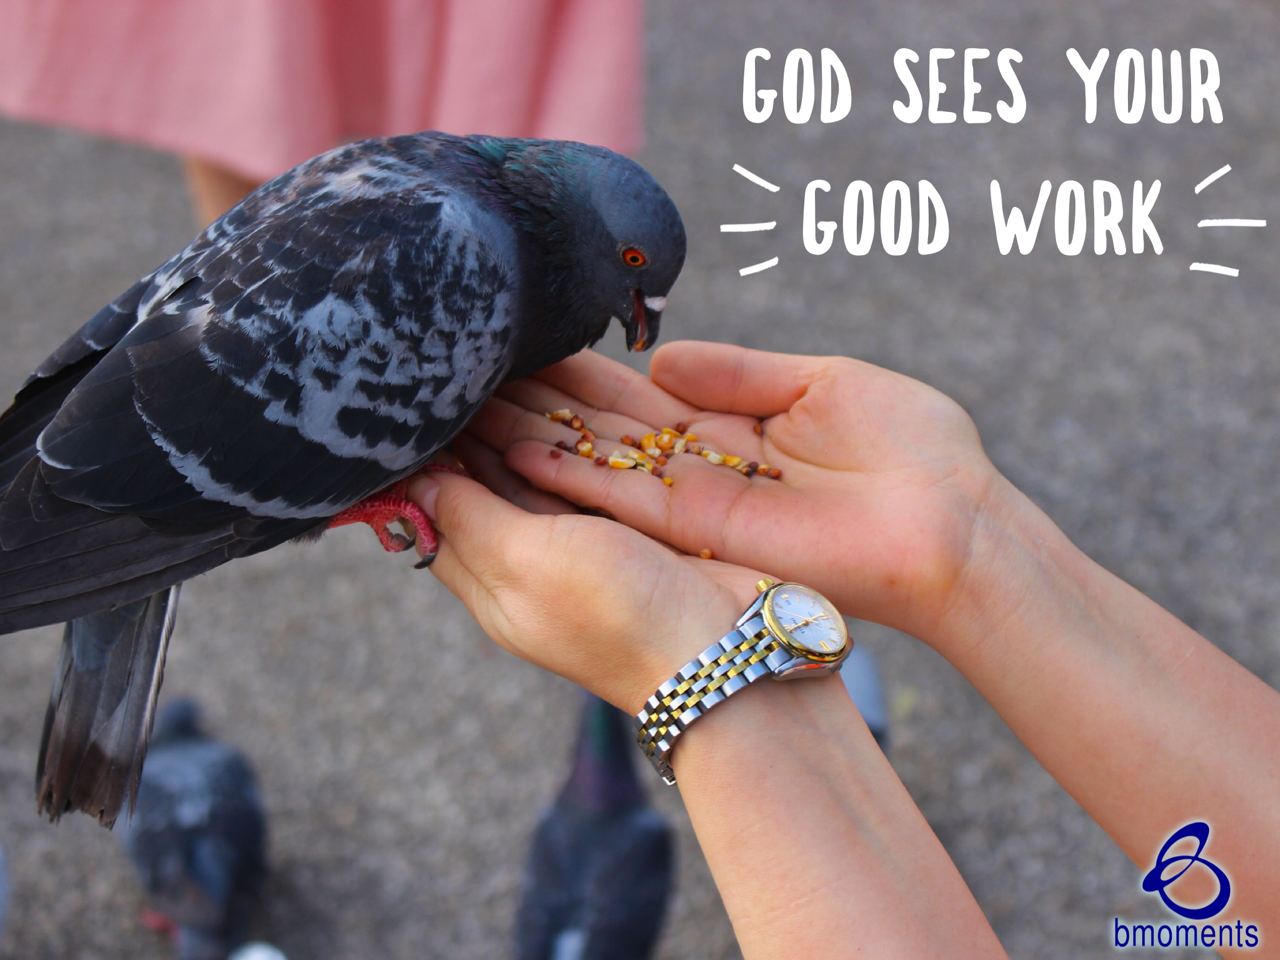 Your Good Works Are Accruing with God